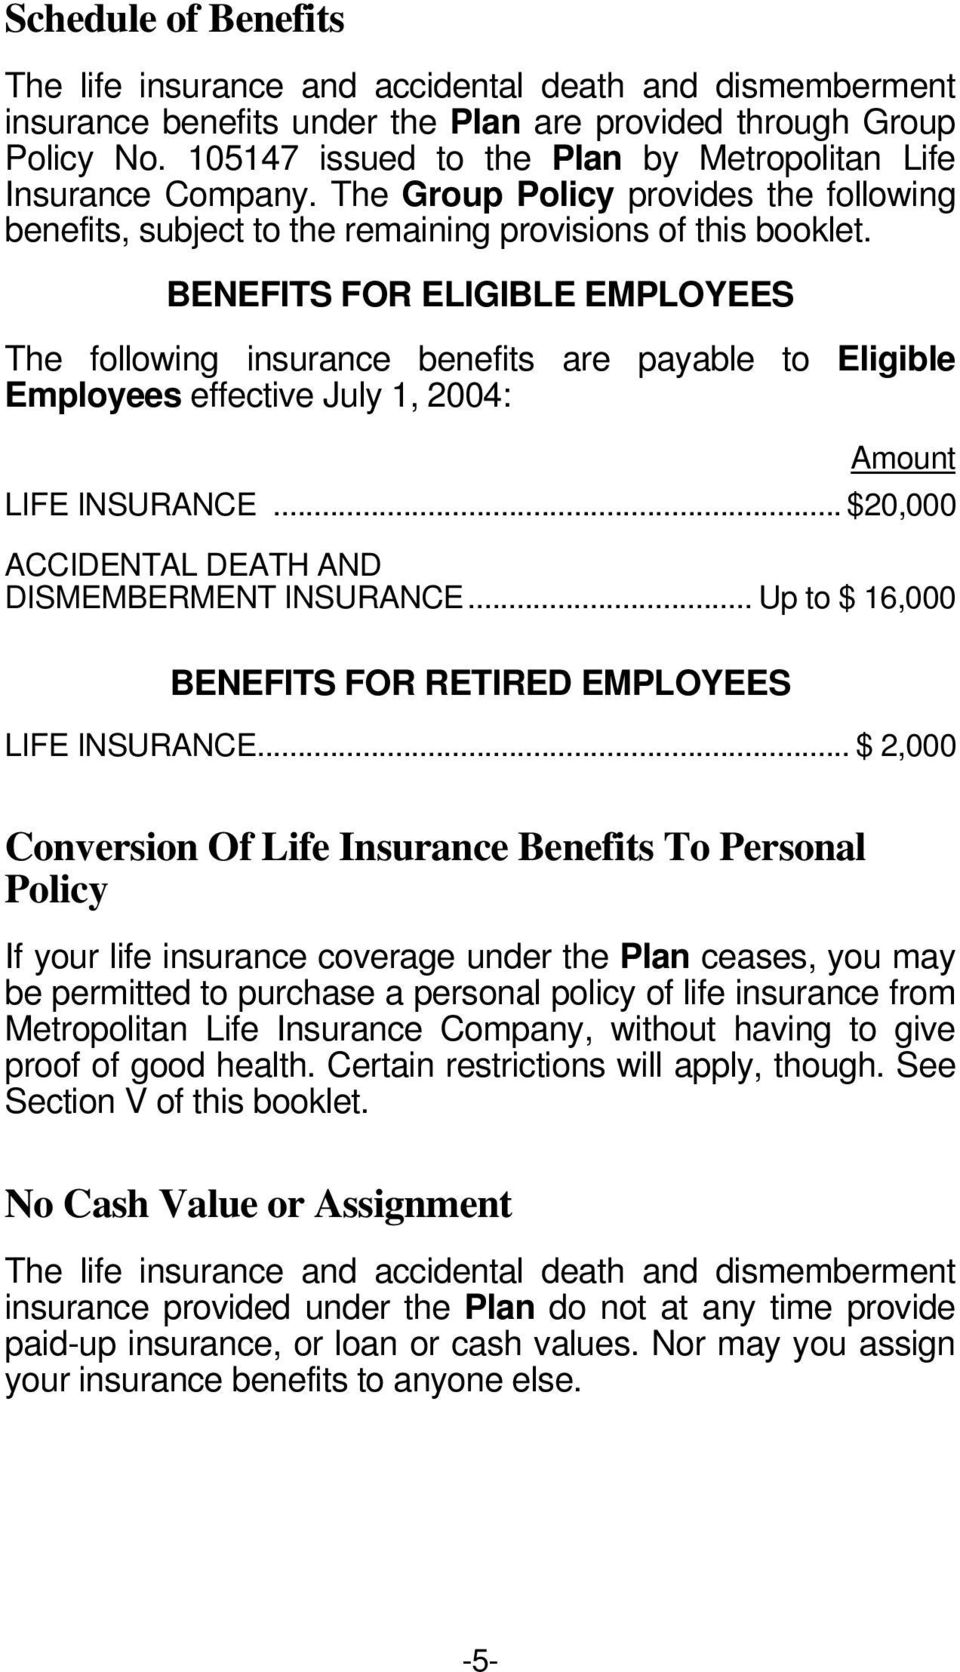 BENEFITS FOR ELIGIBLE EMPLOYEES The following insurance benefits are payable to Eligible Employees effective July 1, 2004: Amount LIFE INSURANCE... $20,000 ACCIDENTAL DEATH AND DISMEMBERMENT INSURANCE.